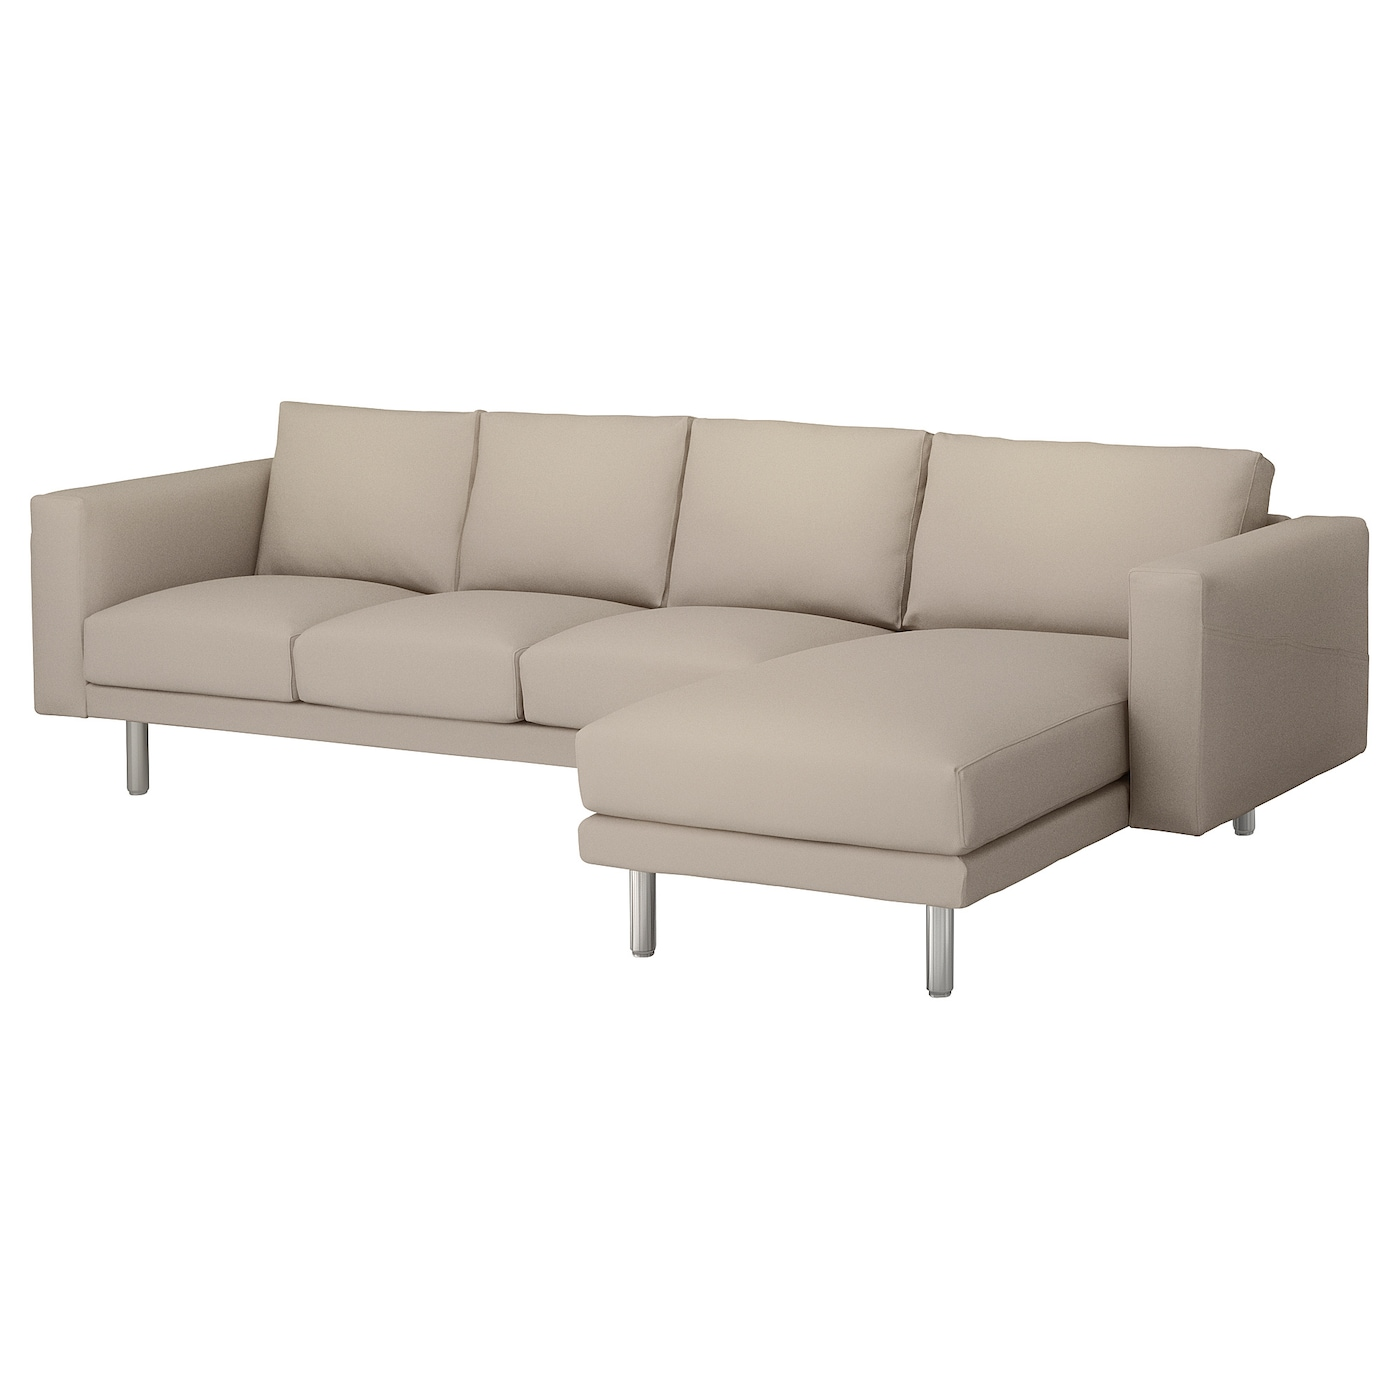 Norsborg 4 seat sofa with chaise longue gr sbo beige metal for 4 seat sofa with chaise